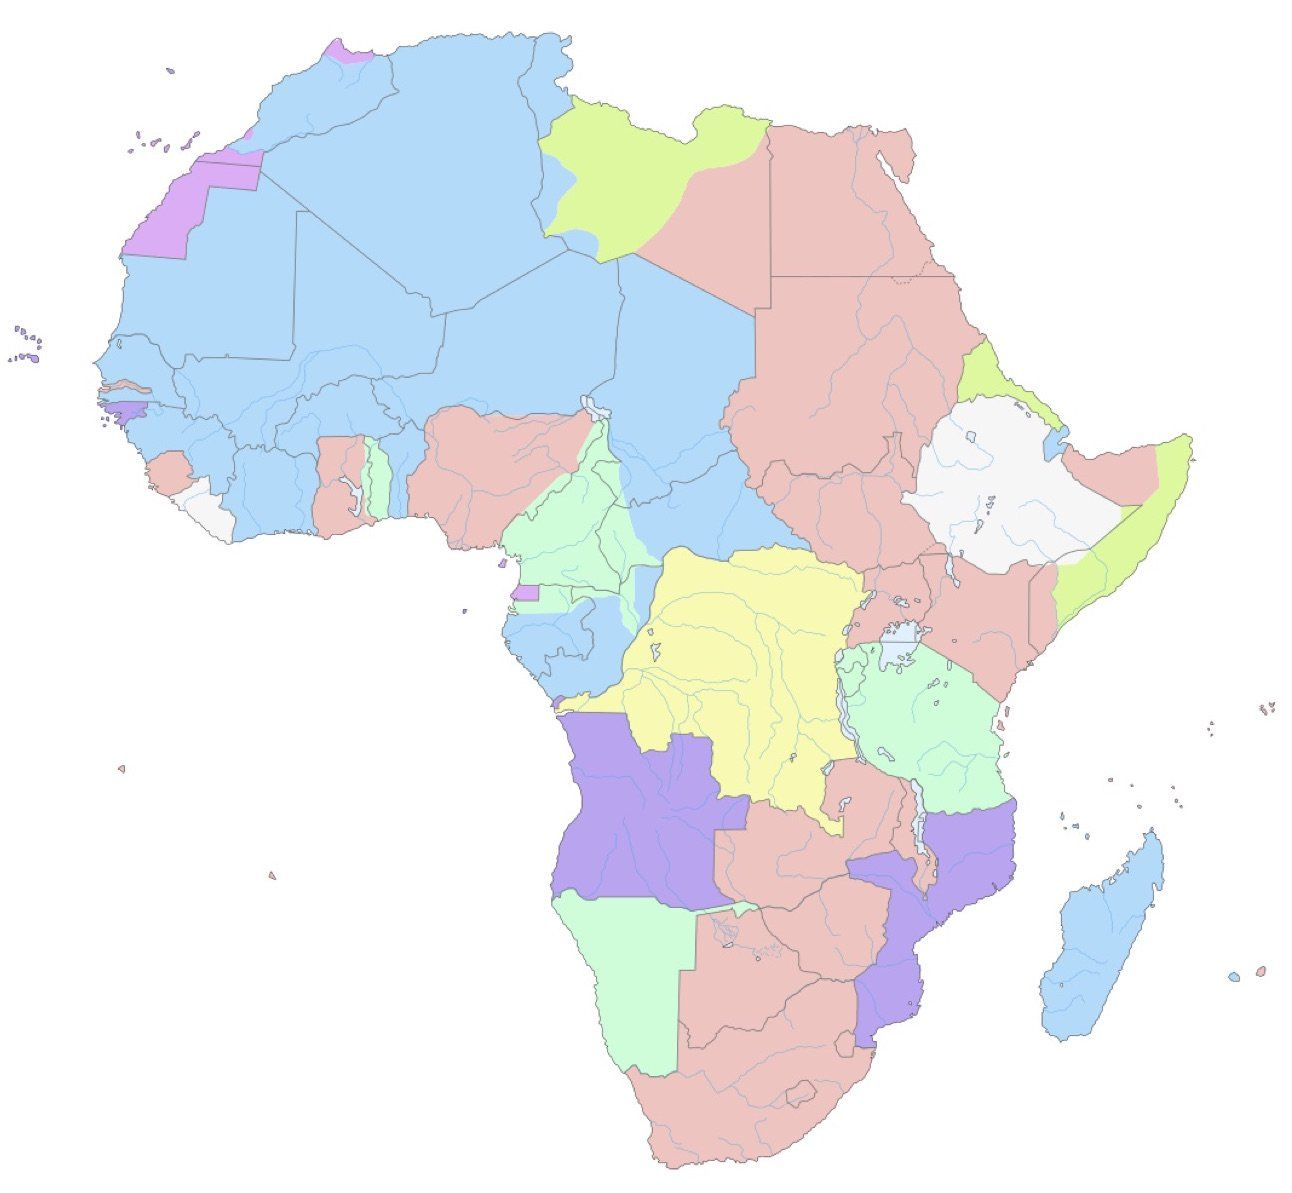 European colonies in Africa in 1913. Blue: France, pink: Britain, light green: Germany, dark green: Italy, light purple: Spain, dark purple: Portugal, yellow: Belgium, white: independent. Lines reflect current borders